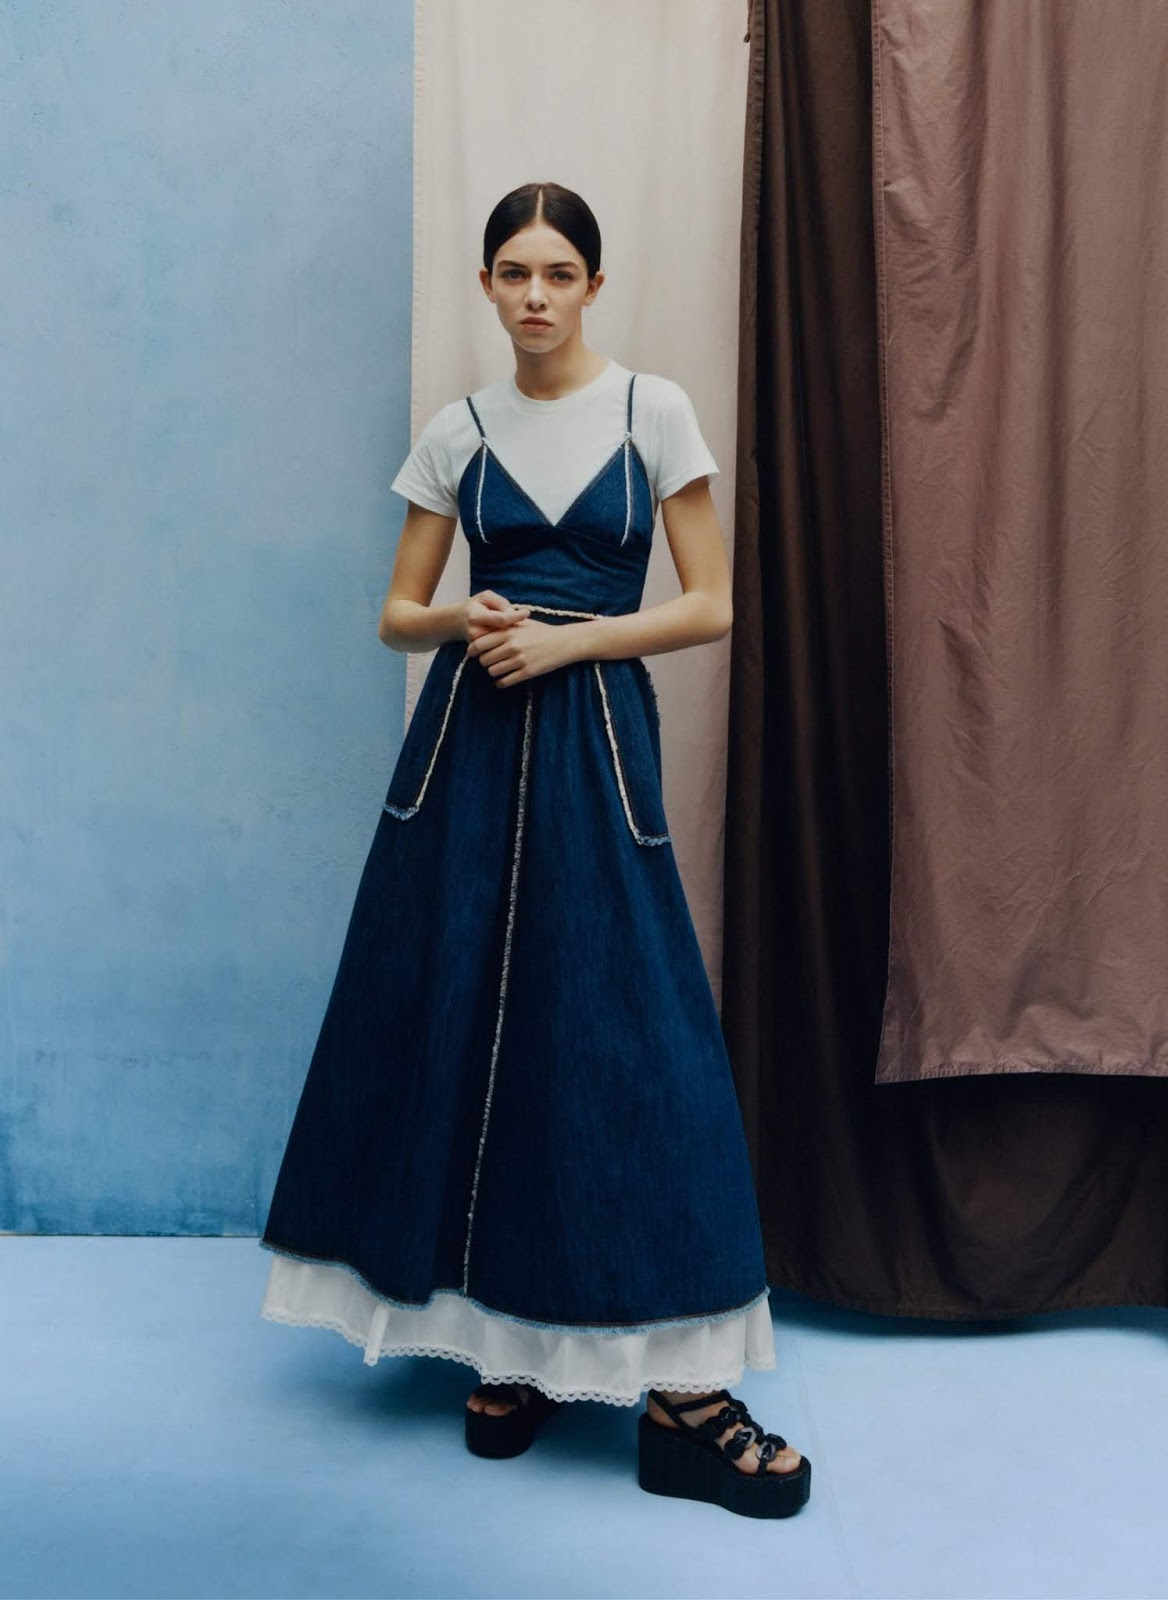 Maria Miguel - Brock Collection top. Banana Republic T-shirt. Dior skirt. Prada sandals. Photographed by Tyler Mitchell, Vogue, April 2020